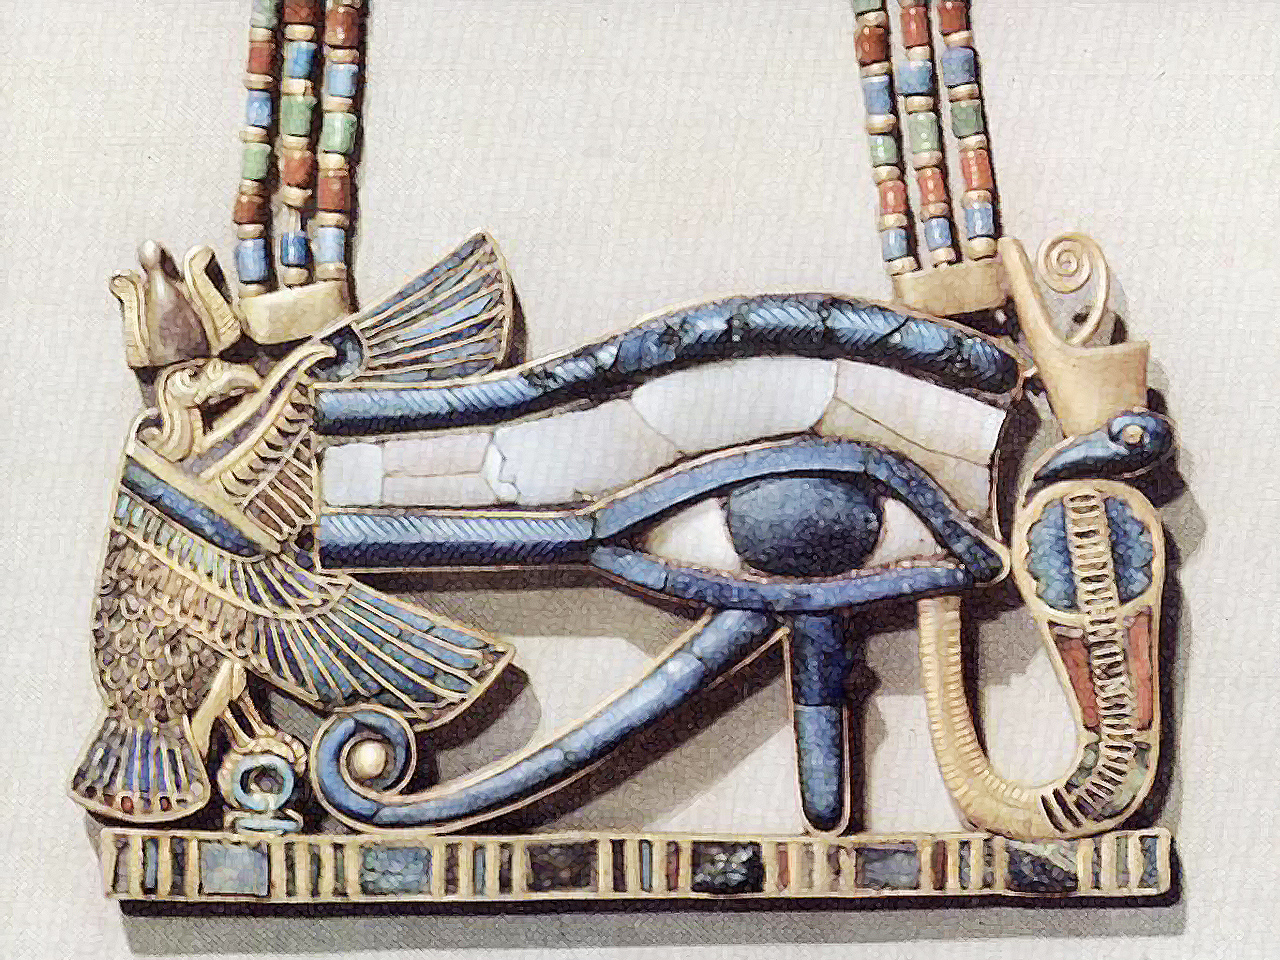 Talismans And Amulets For Prosperity And Protection In Ancient Egypt